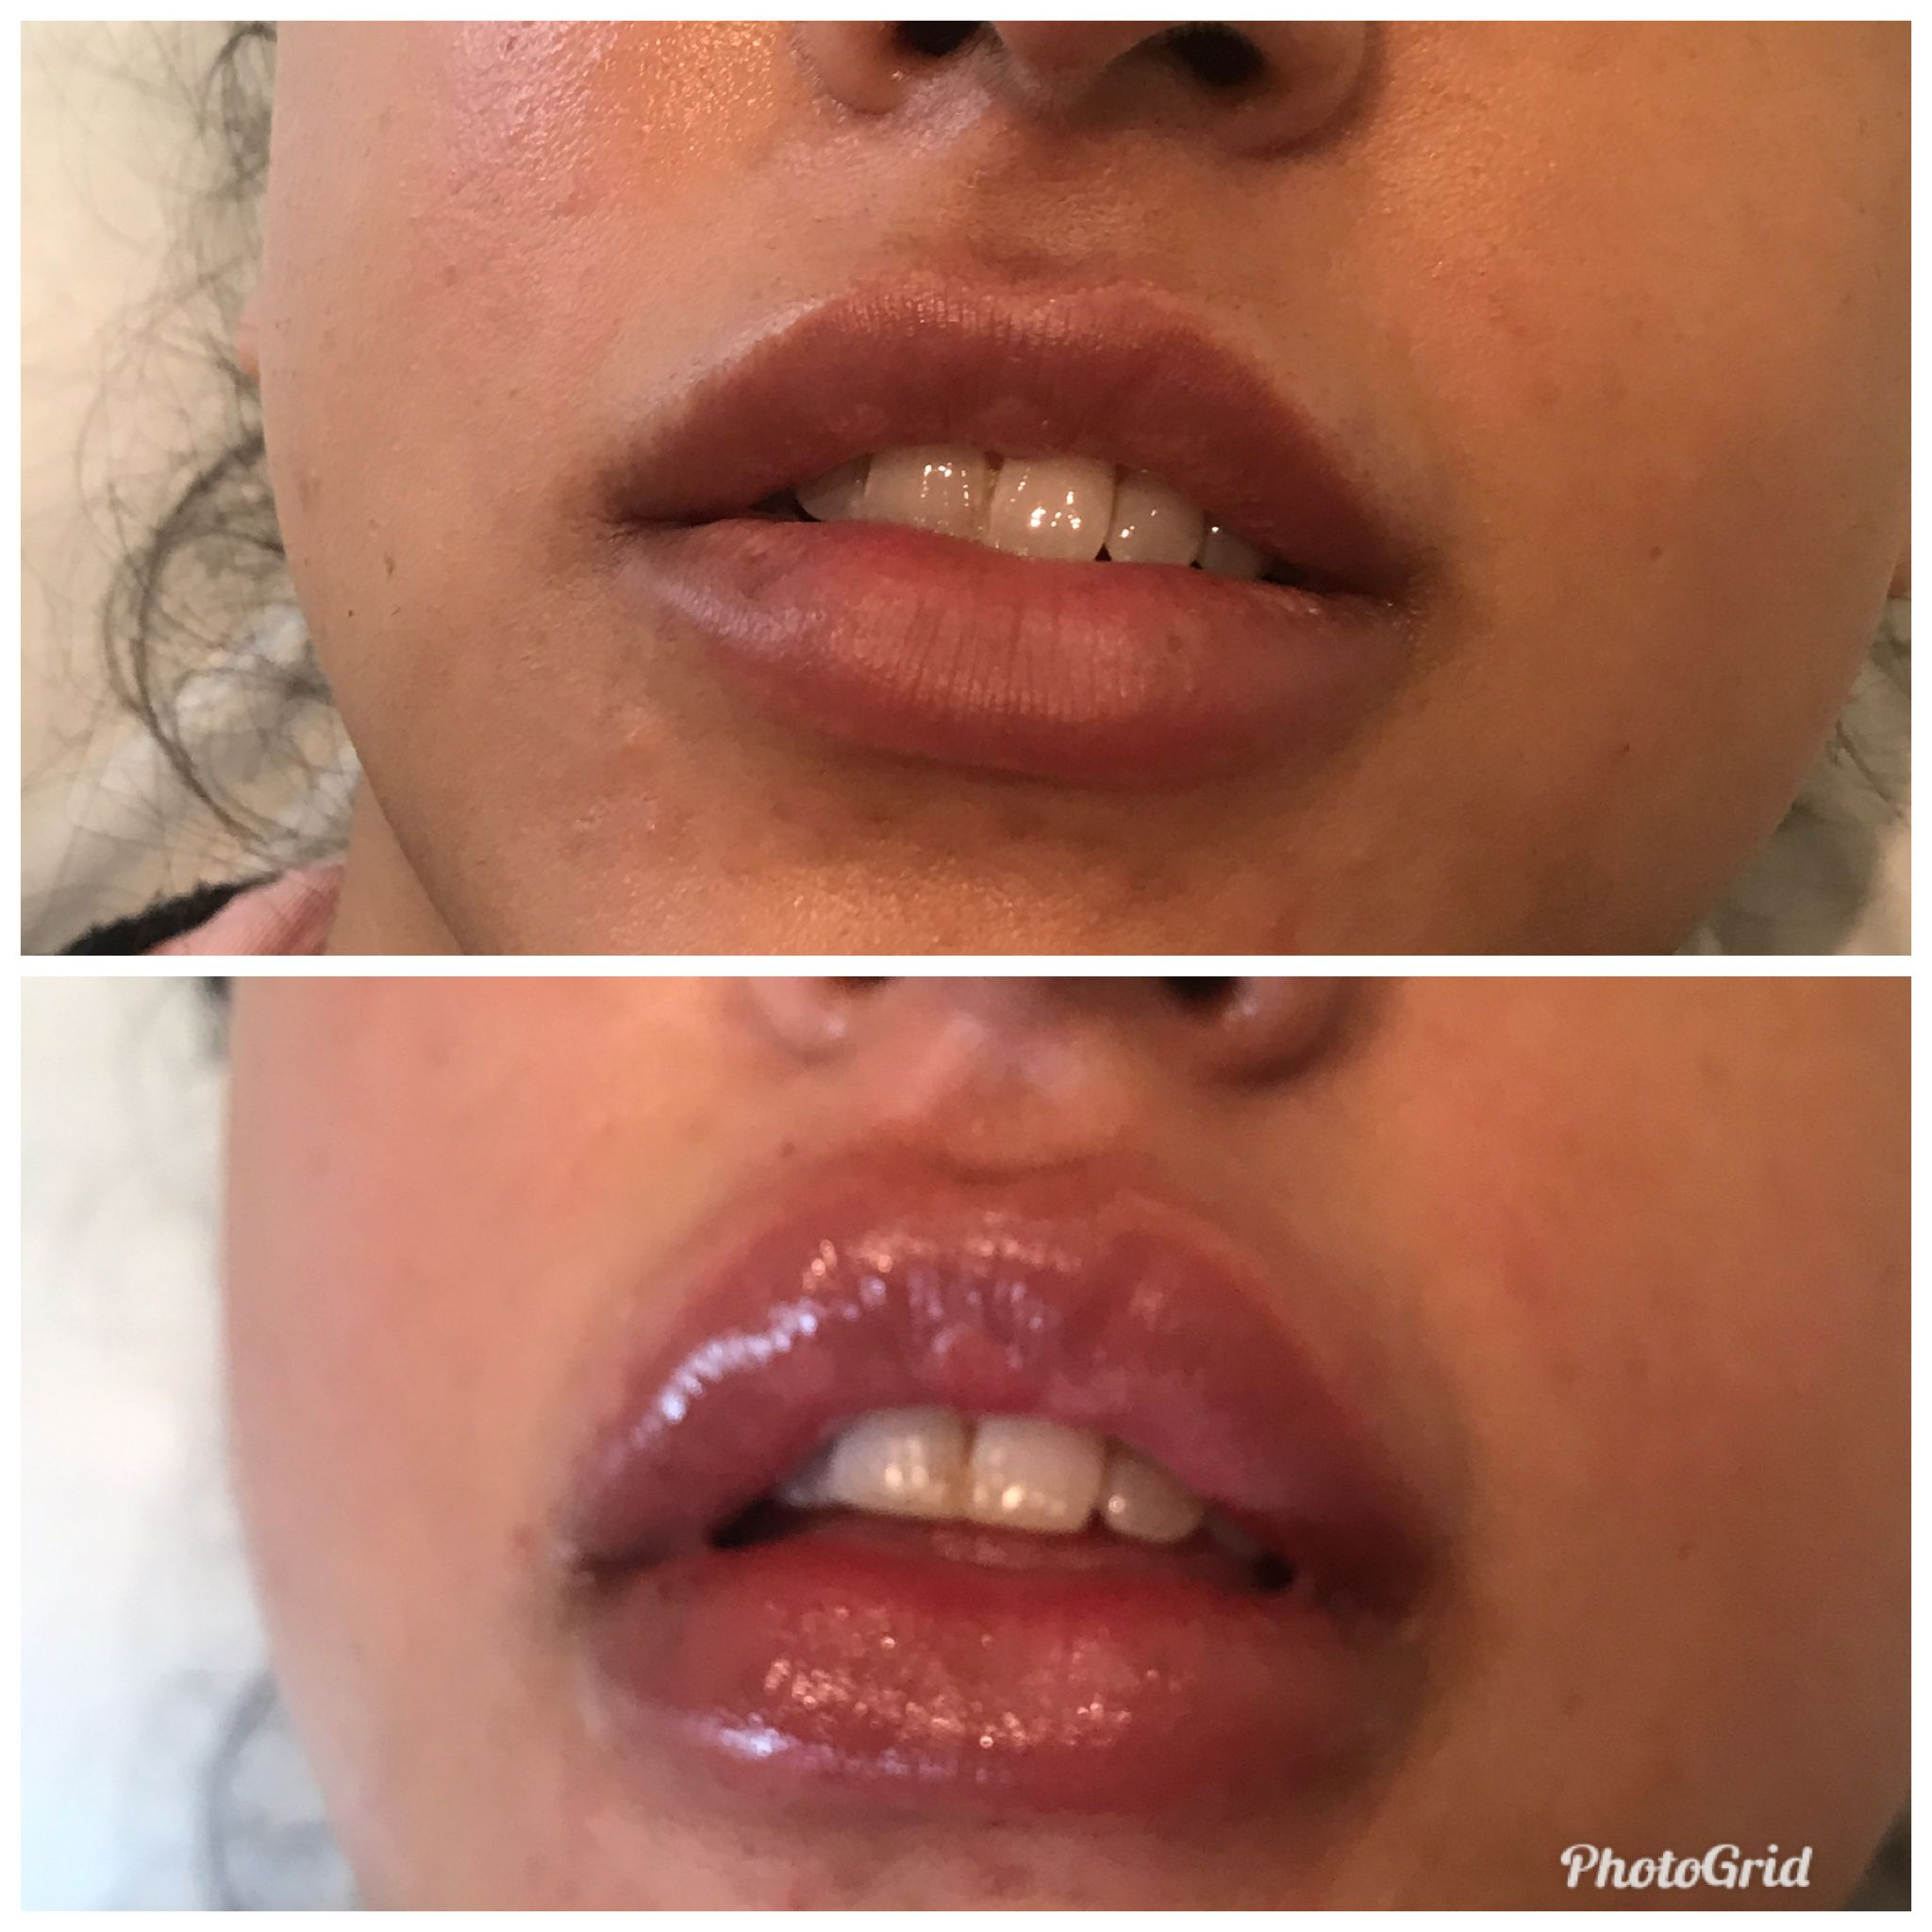 Creating a beautiful pout with 1ml of Juvederm today